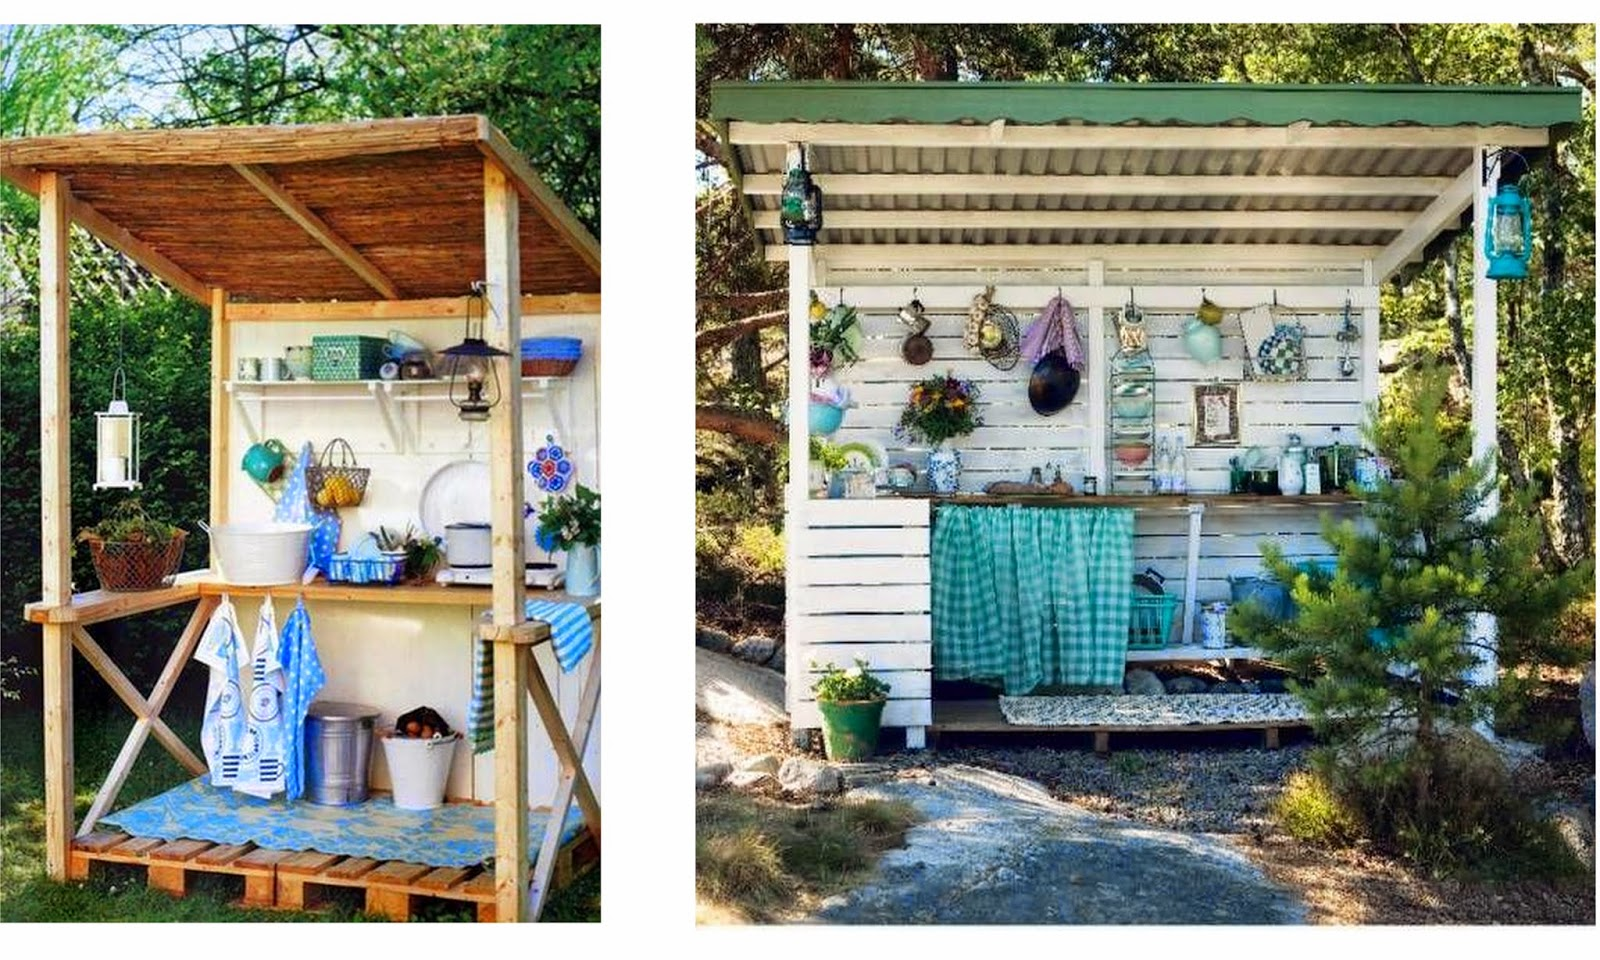 Gypsy yaya summer kitchens for Summer kitchen plans